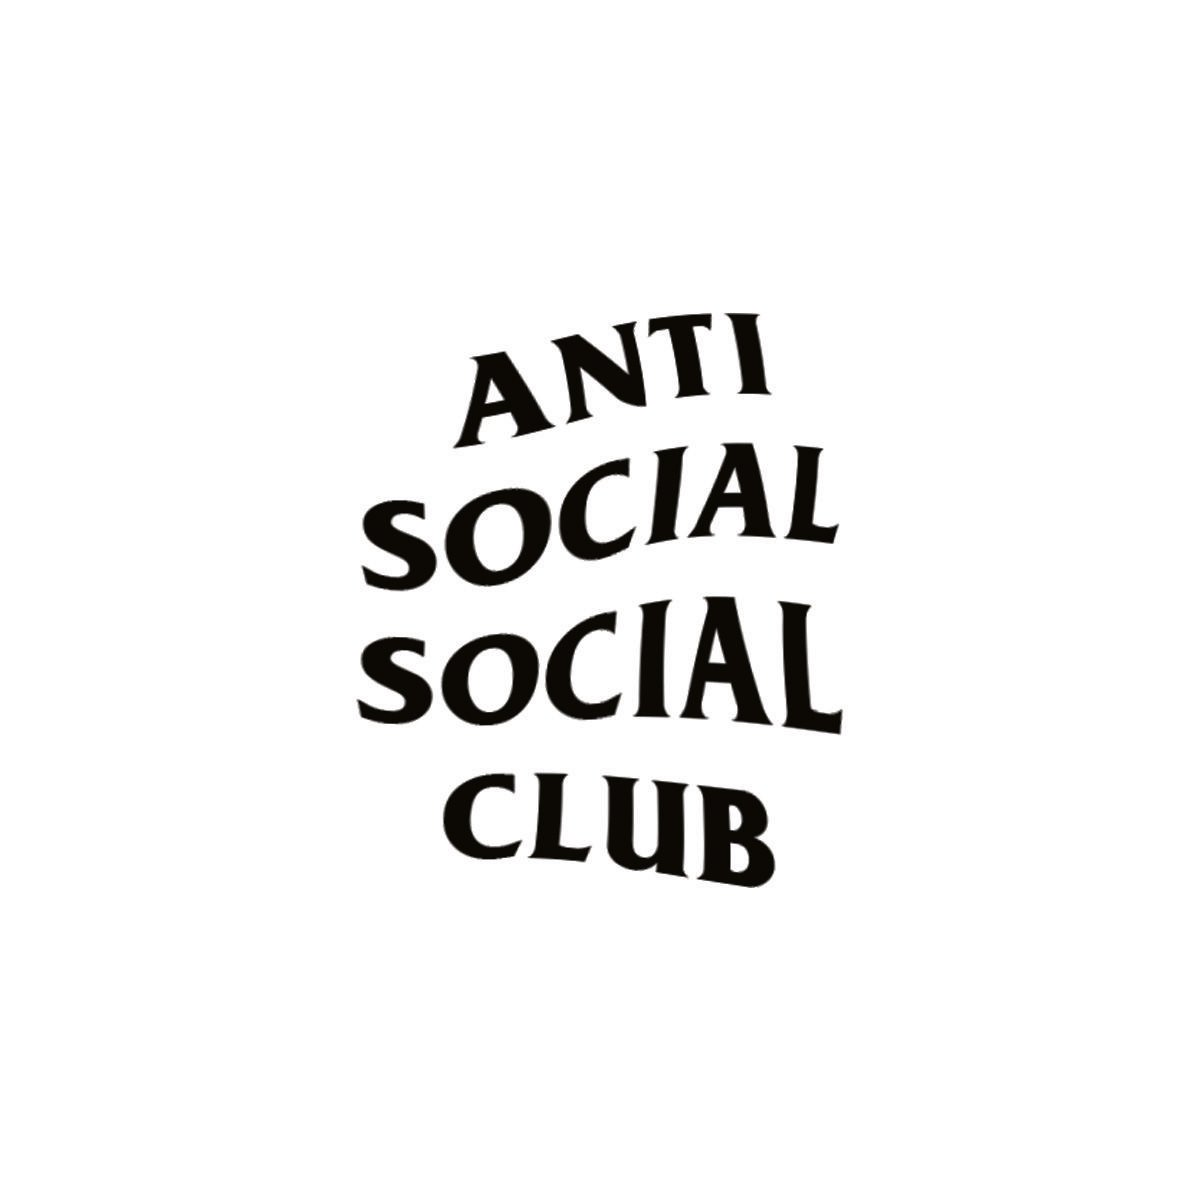 Anti Social Social Club Wallpapers Top Free Anti Social Social Club Backgrounds Wallpaperaccess